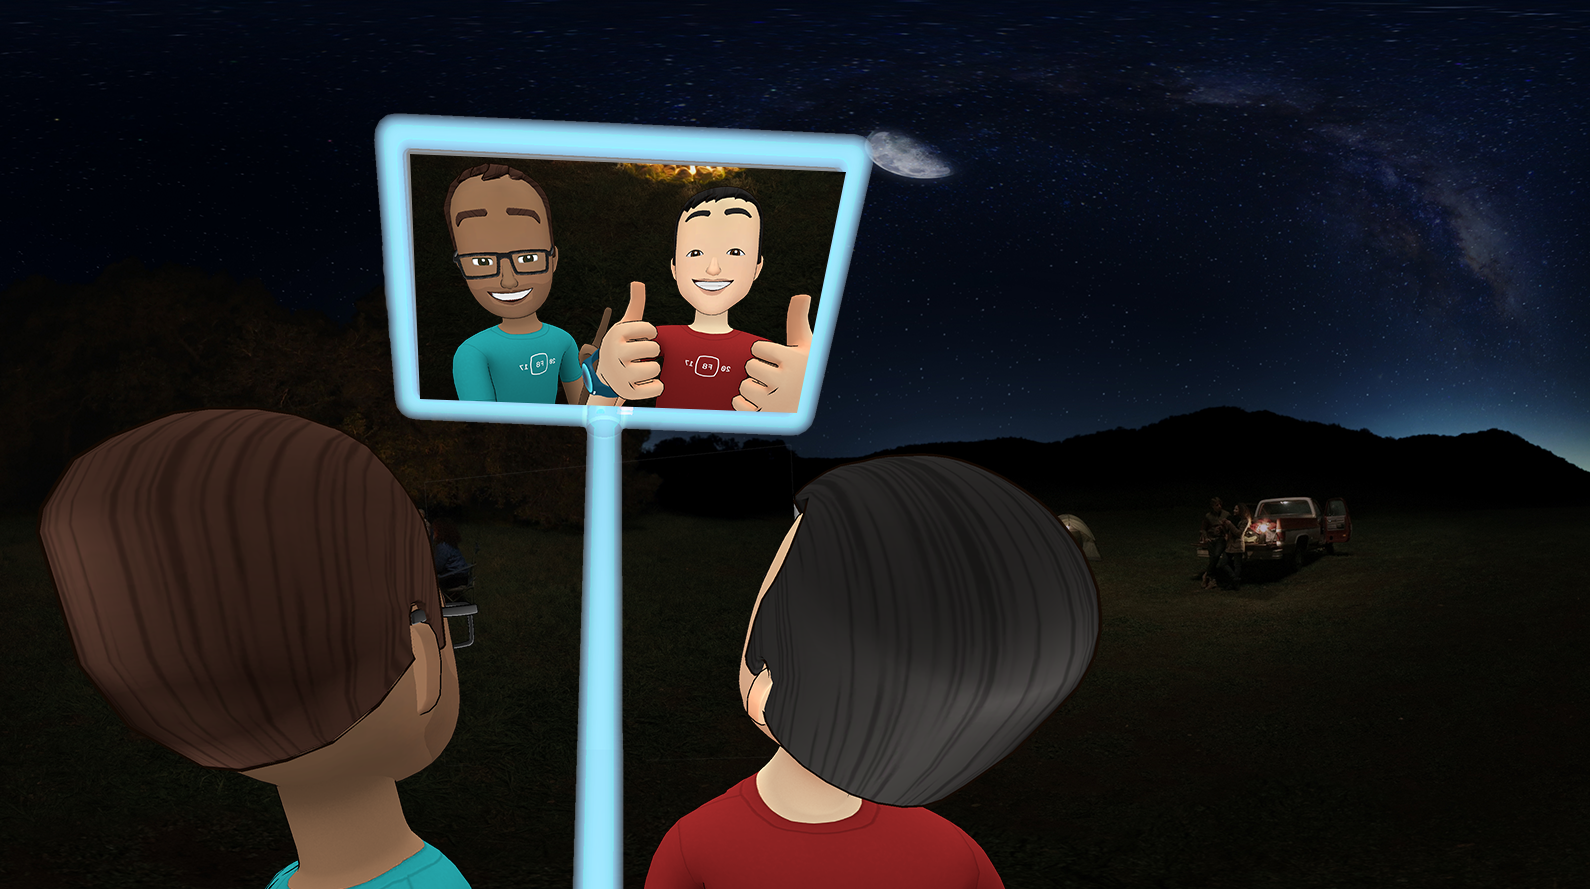 Facebook turns users into cartoon avatars in virtual reality experience